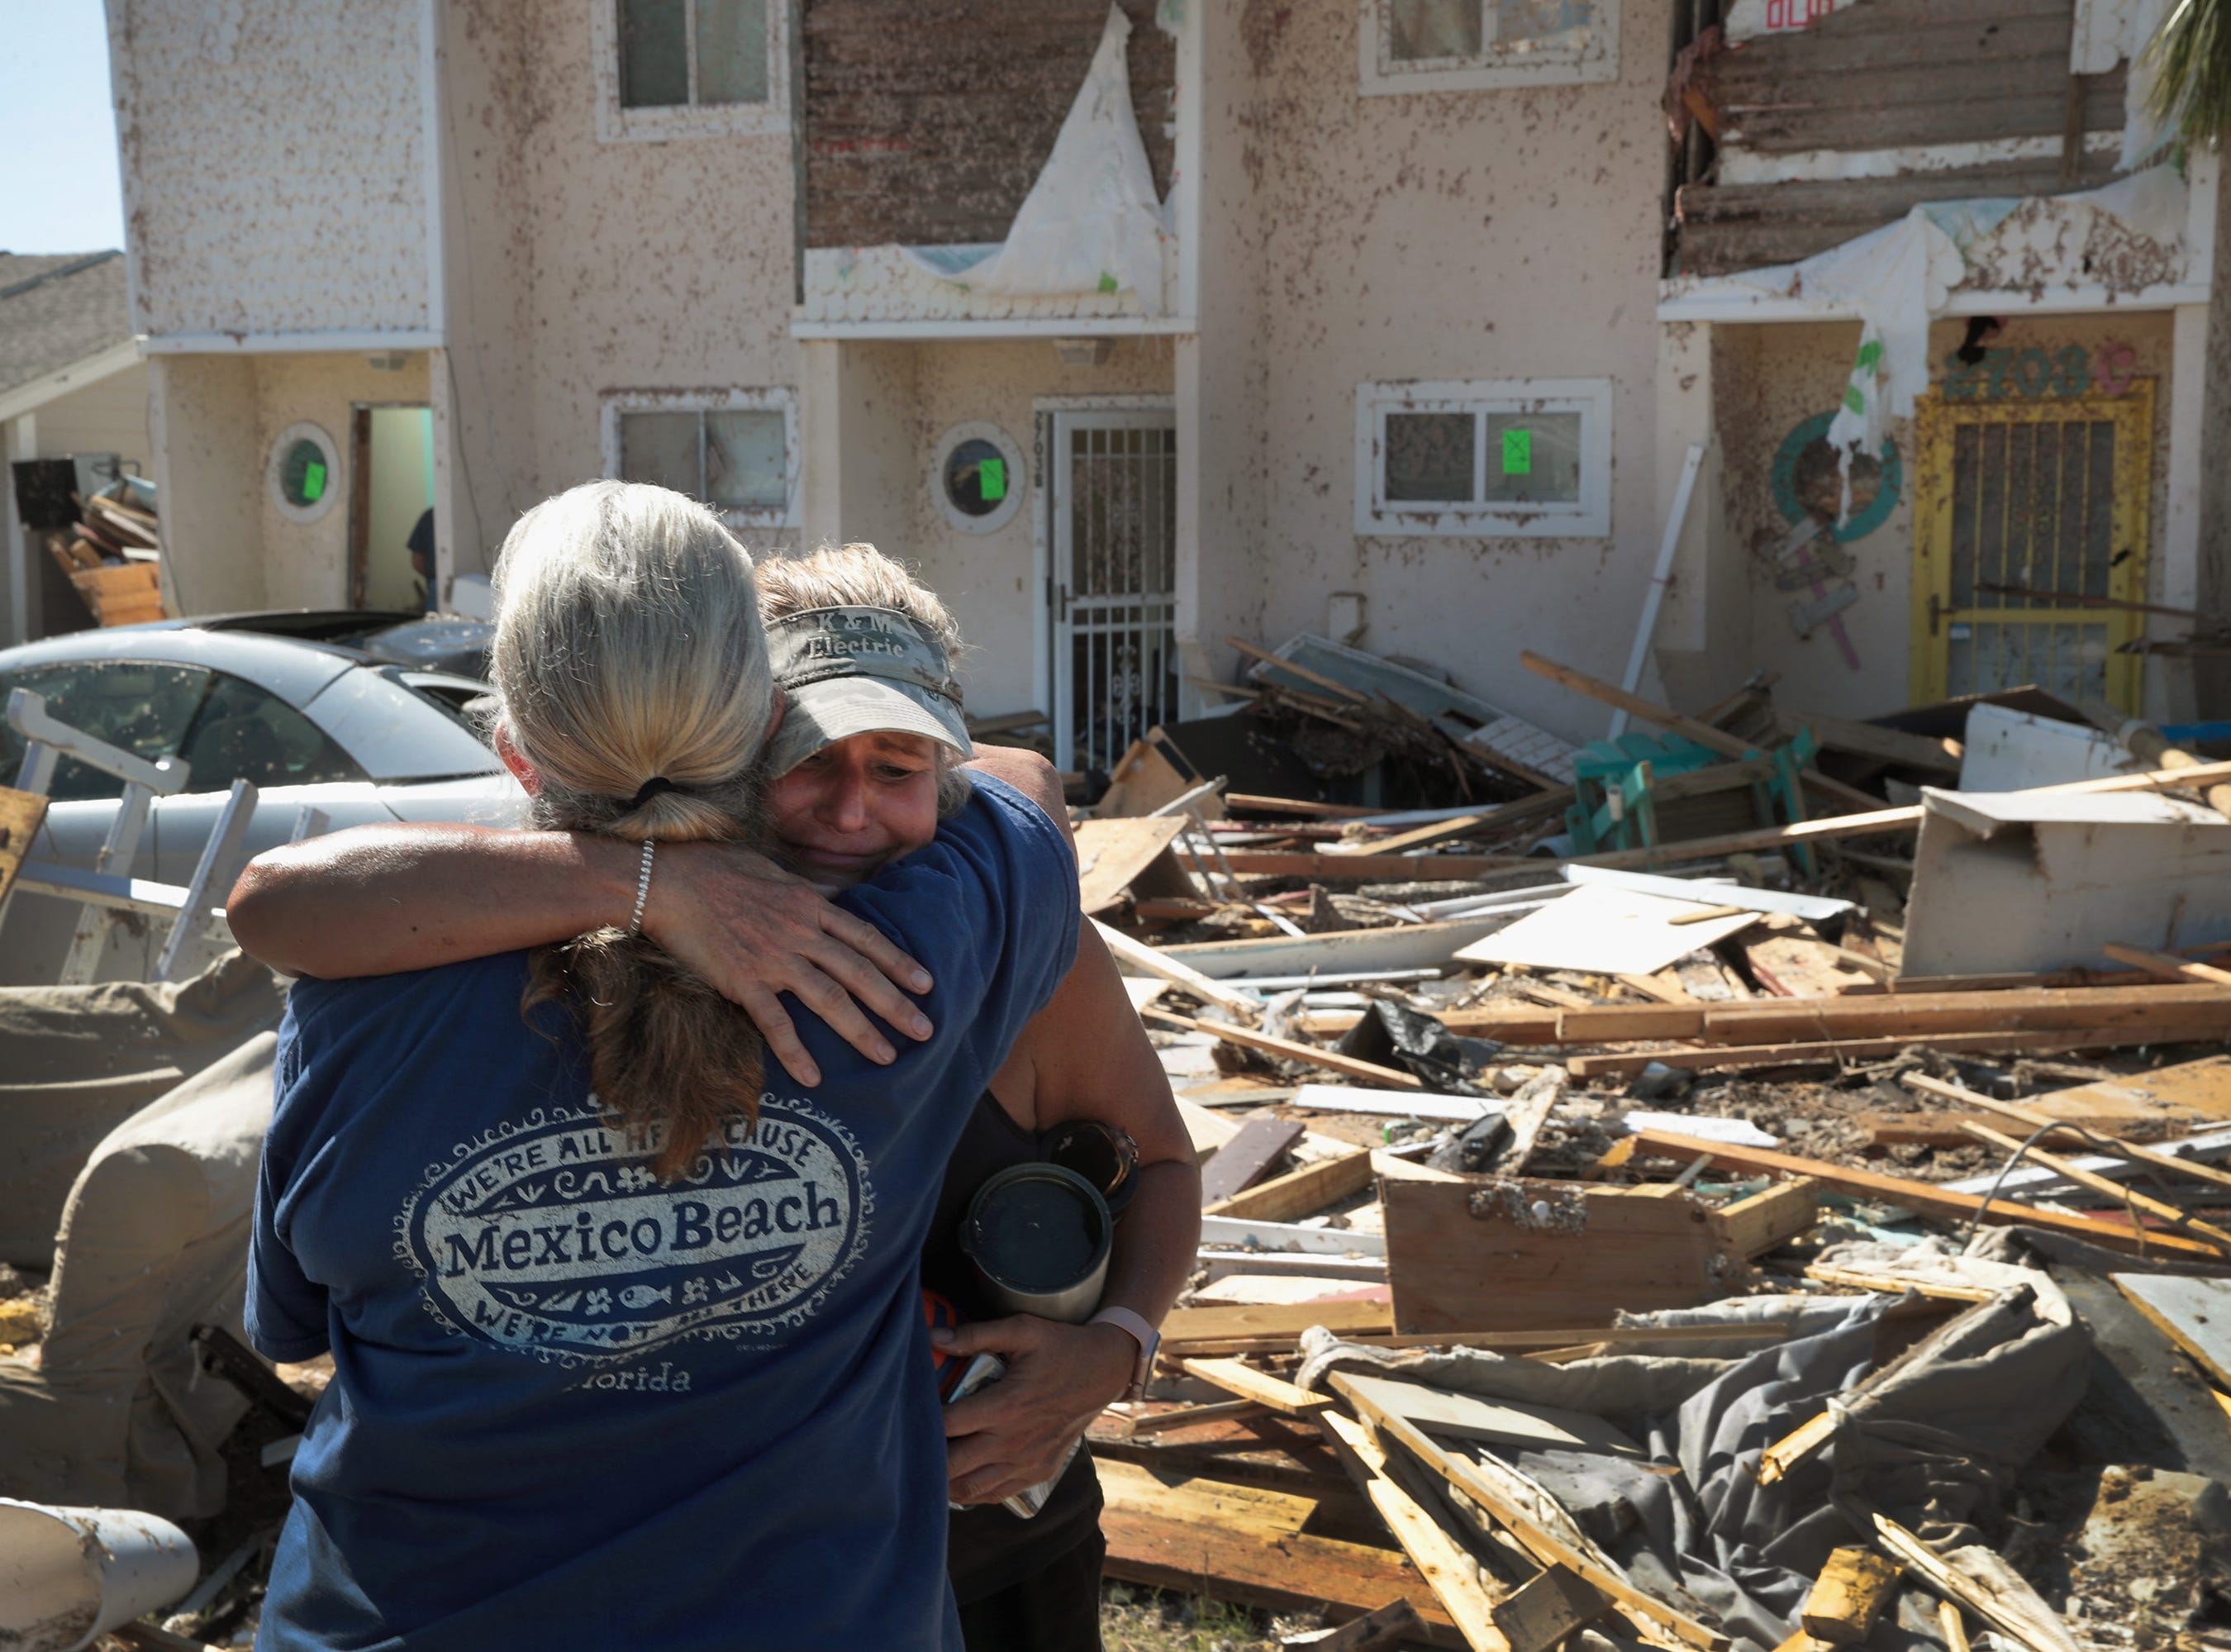 Neighbors Sherry Frantz, left, and Chris McNeal hug as they meet in front of their homes which were destroyed by Hurricane Michael on Oct. 16, 2018 in Mexico Beach, Fla.